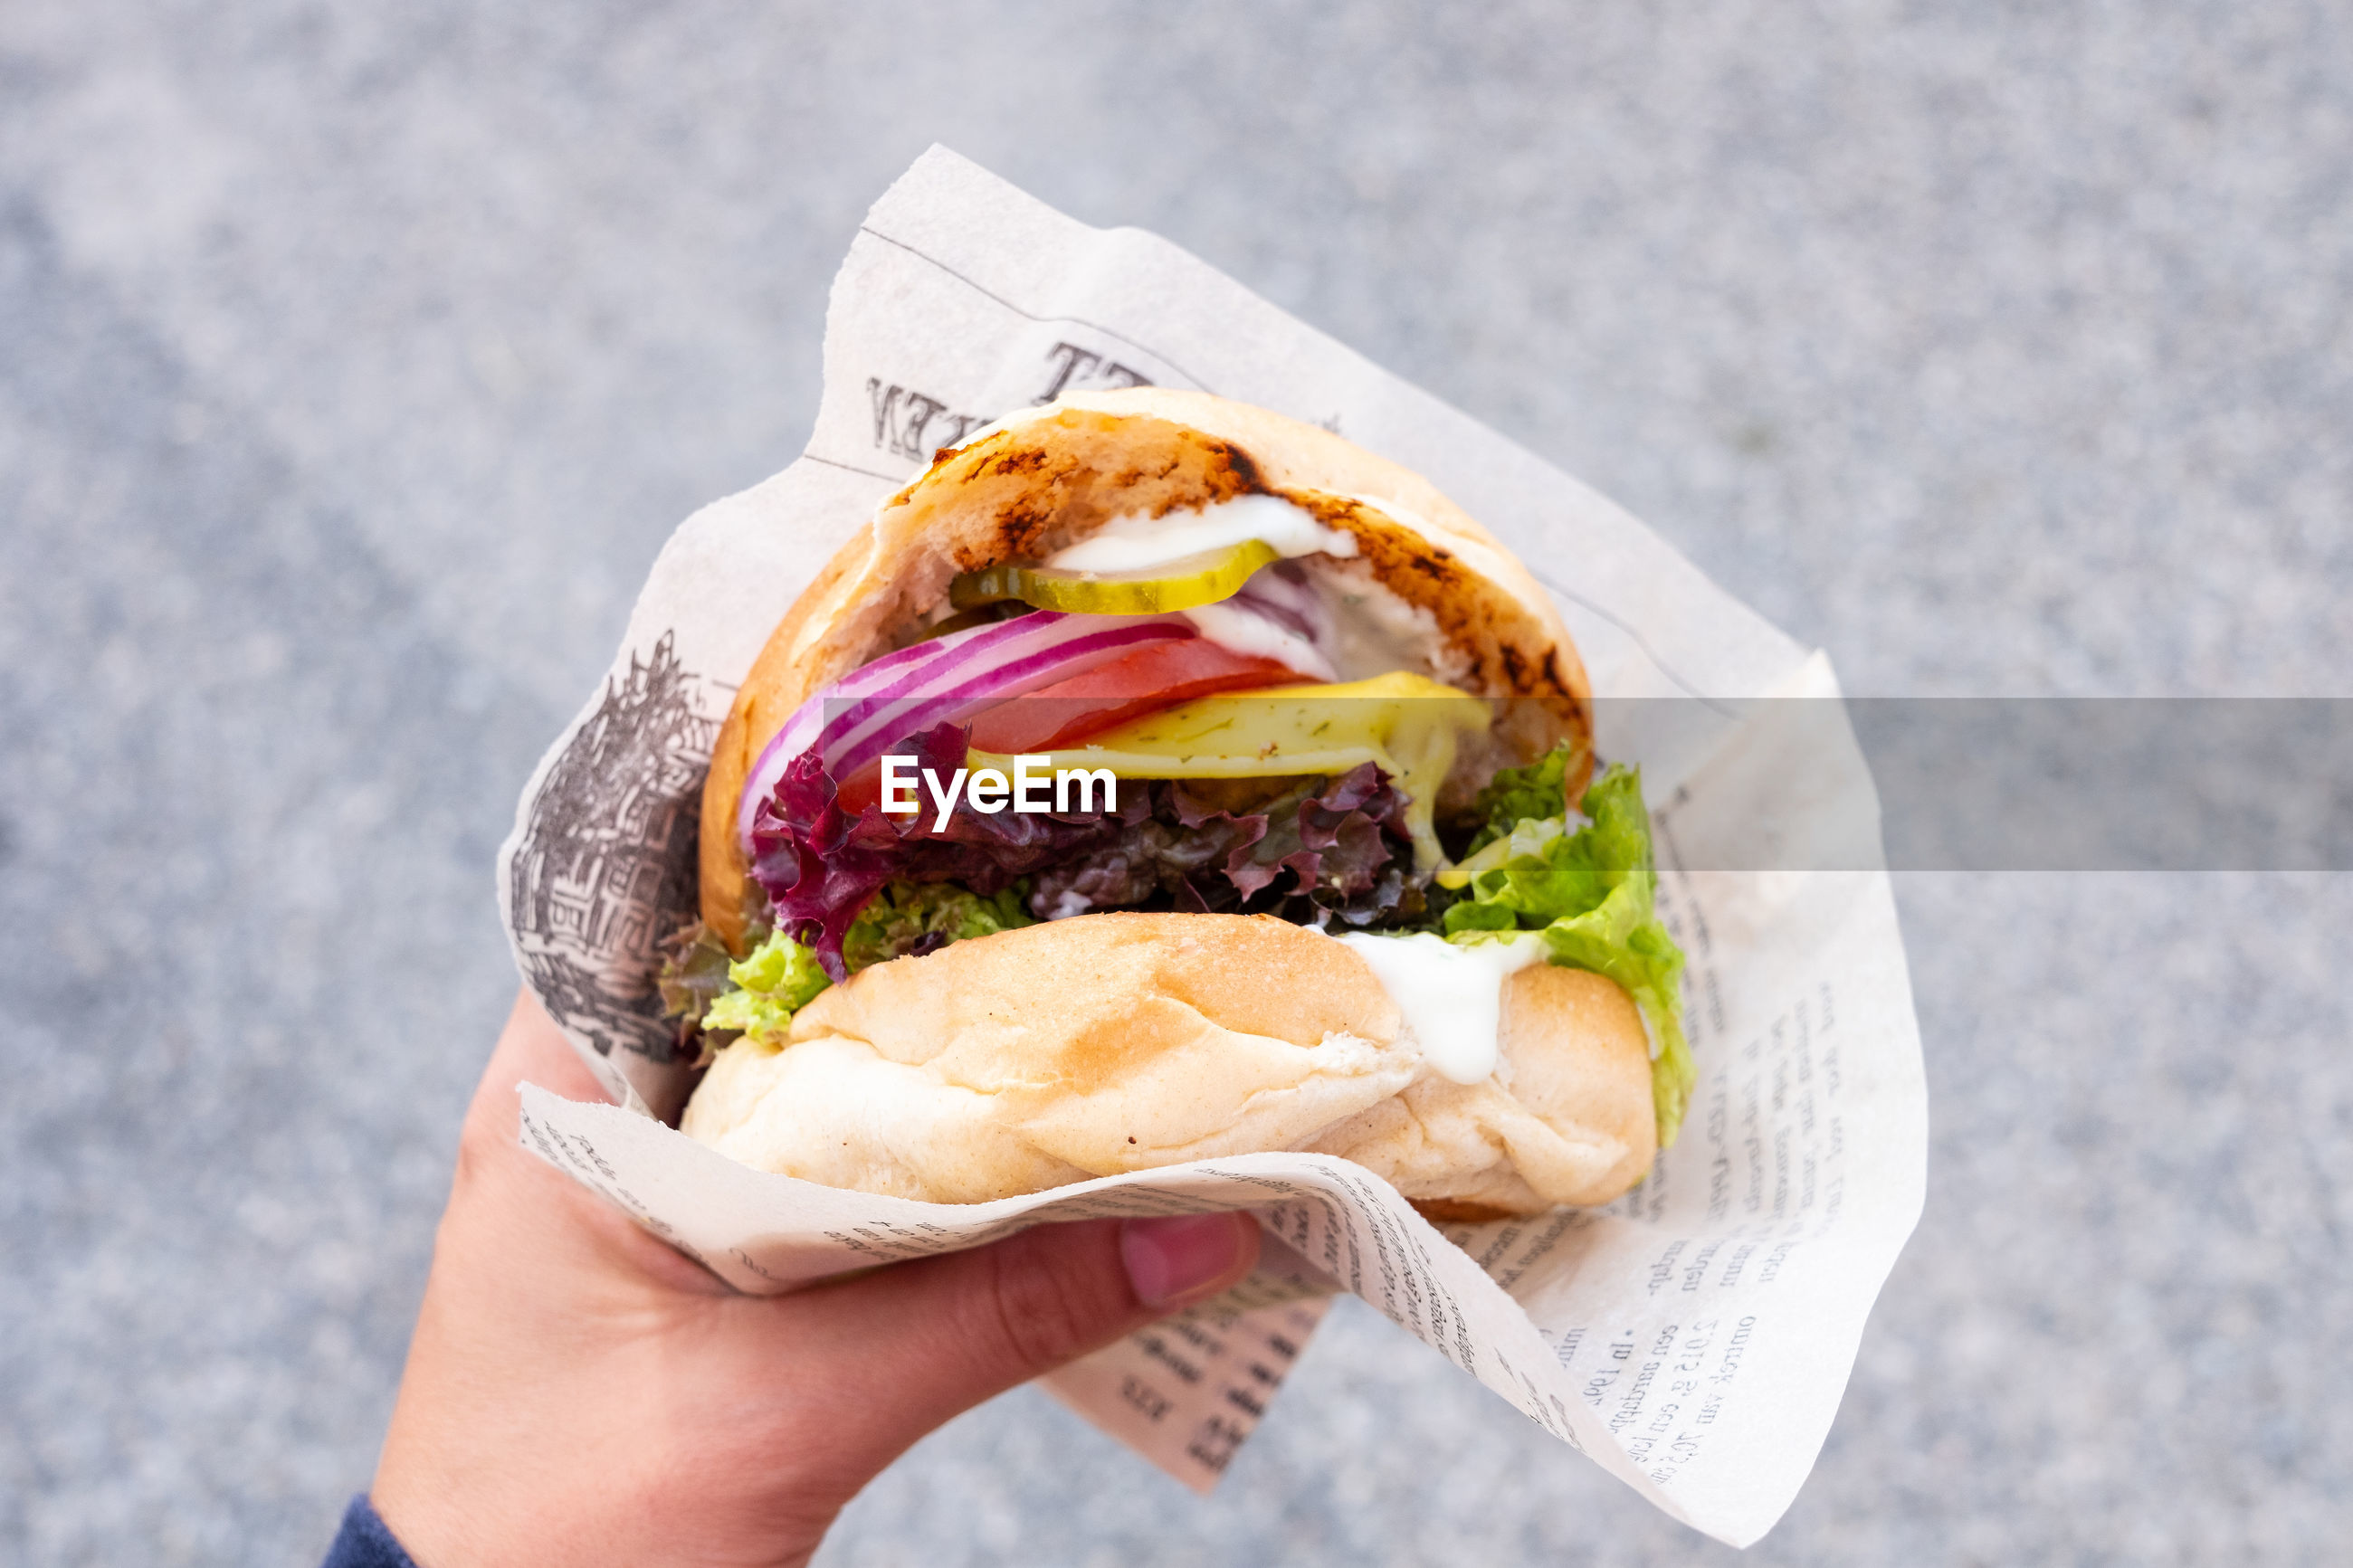 Cropped hand of person holding burger